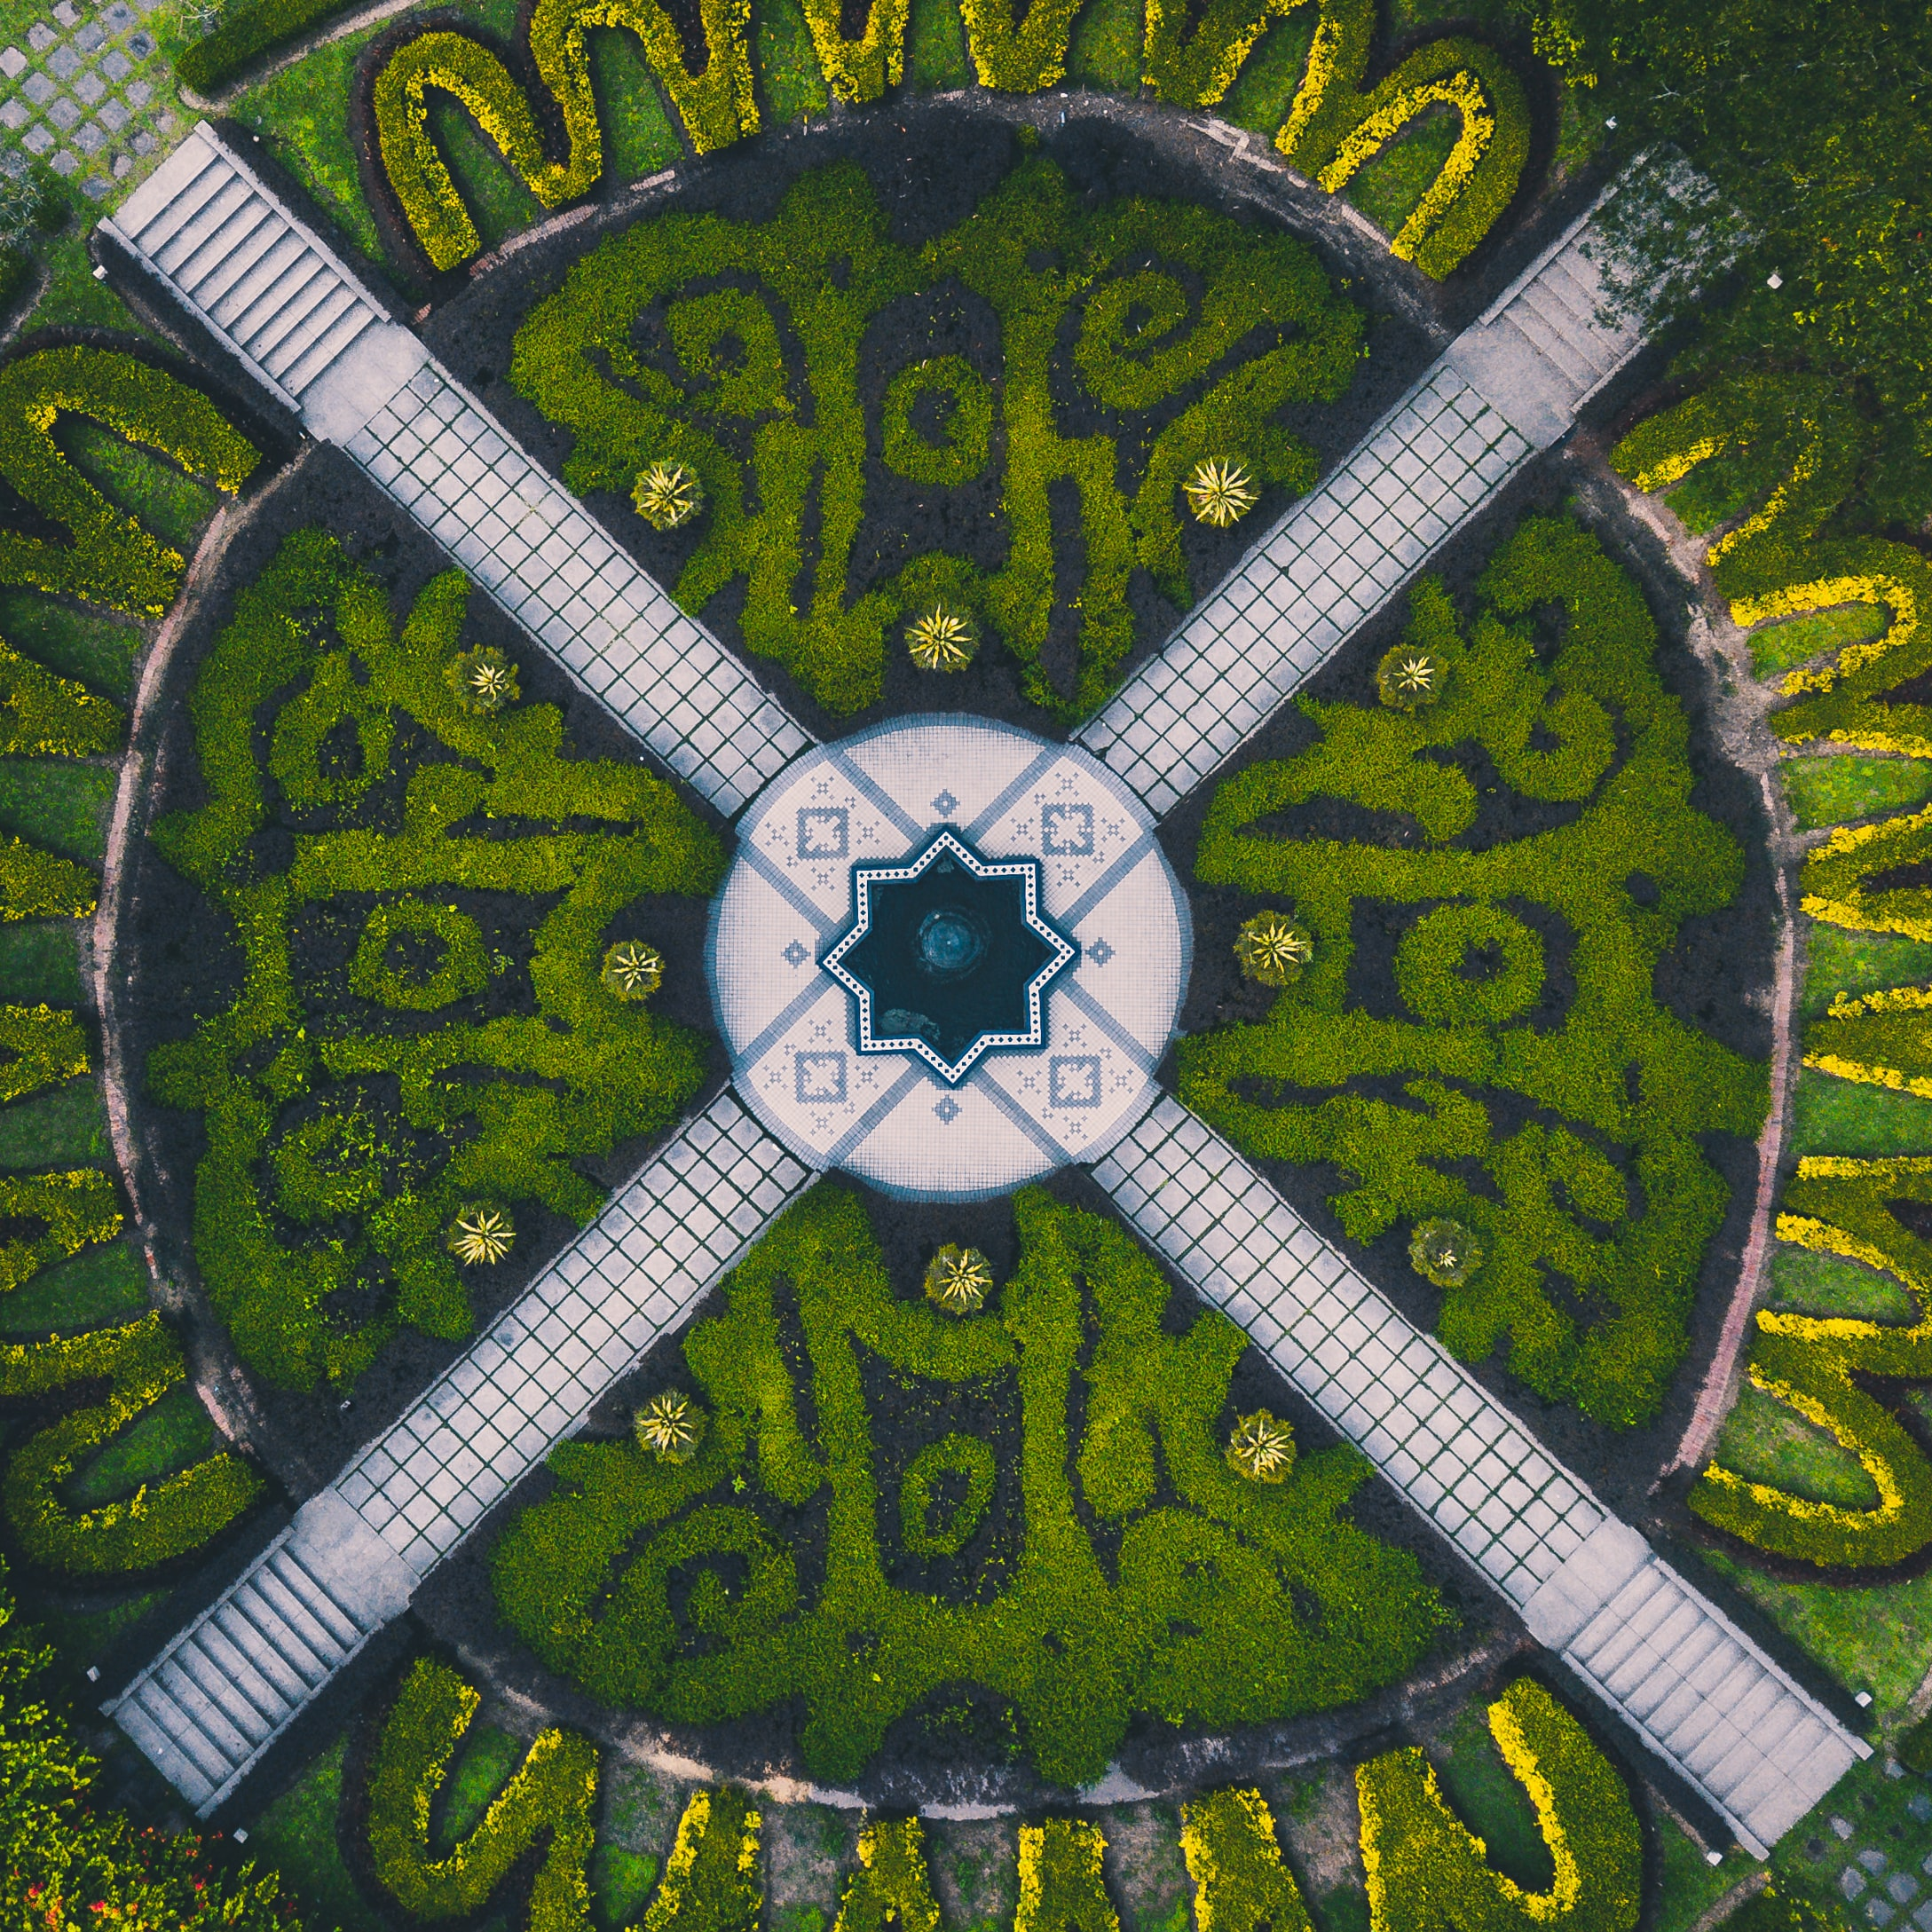 aerial photograph of green plants